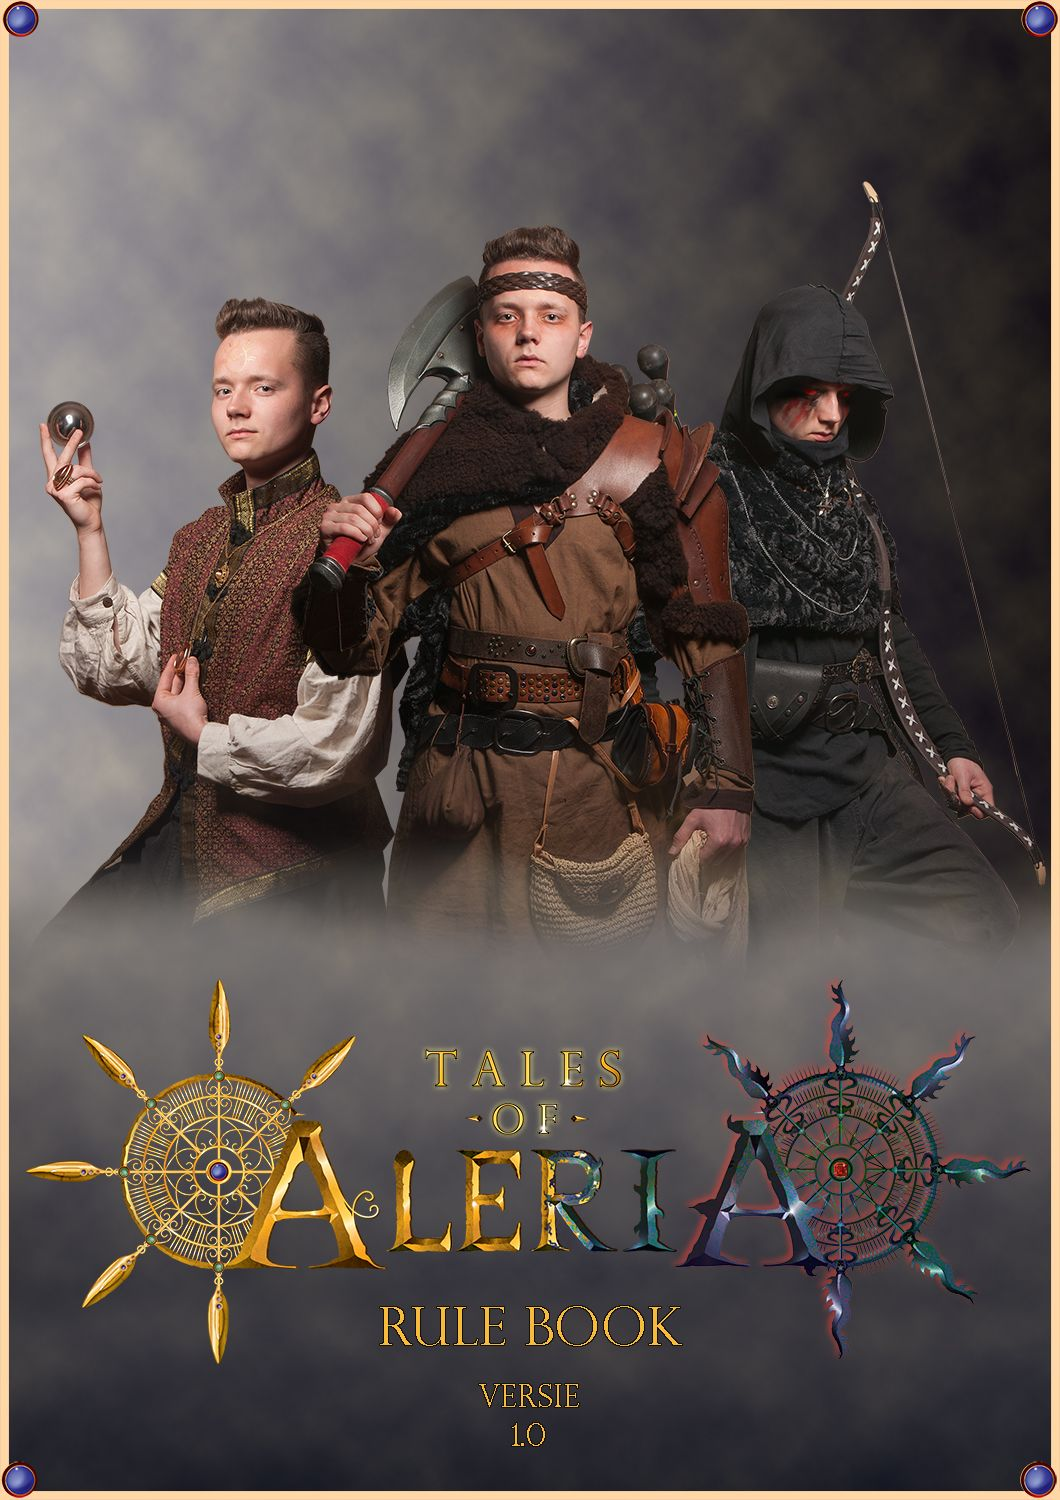 Rule Book Cover for Larp Event Tales of Aleria! STYLING: D-Zyre PHOTOGRAPHY: D-Zyre / Wesley van der Vaart MUA: Wesley van der Vaart MODEL: Roy Verver (http://viddesign.nl) LOGO: Nick van Leent